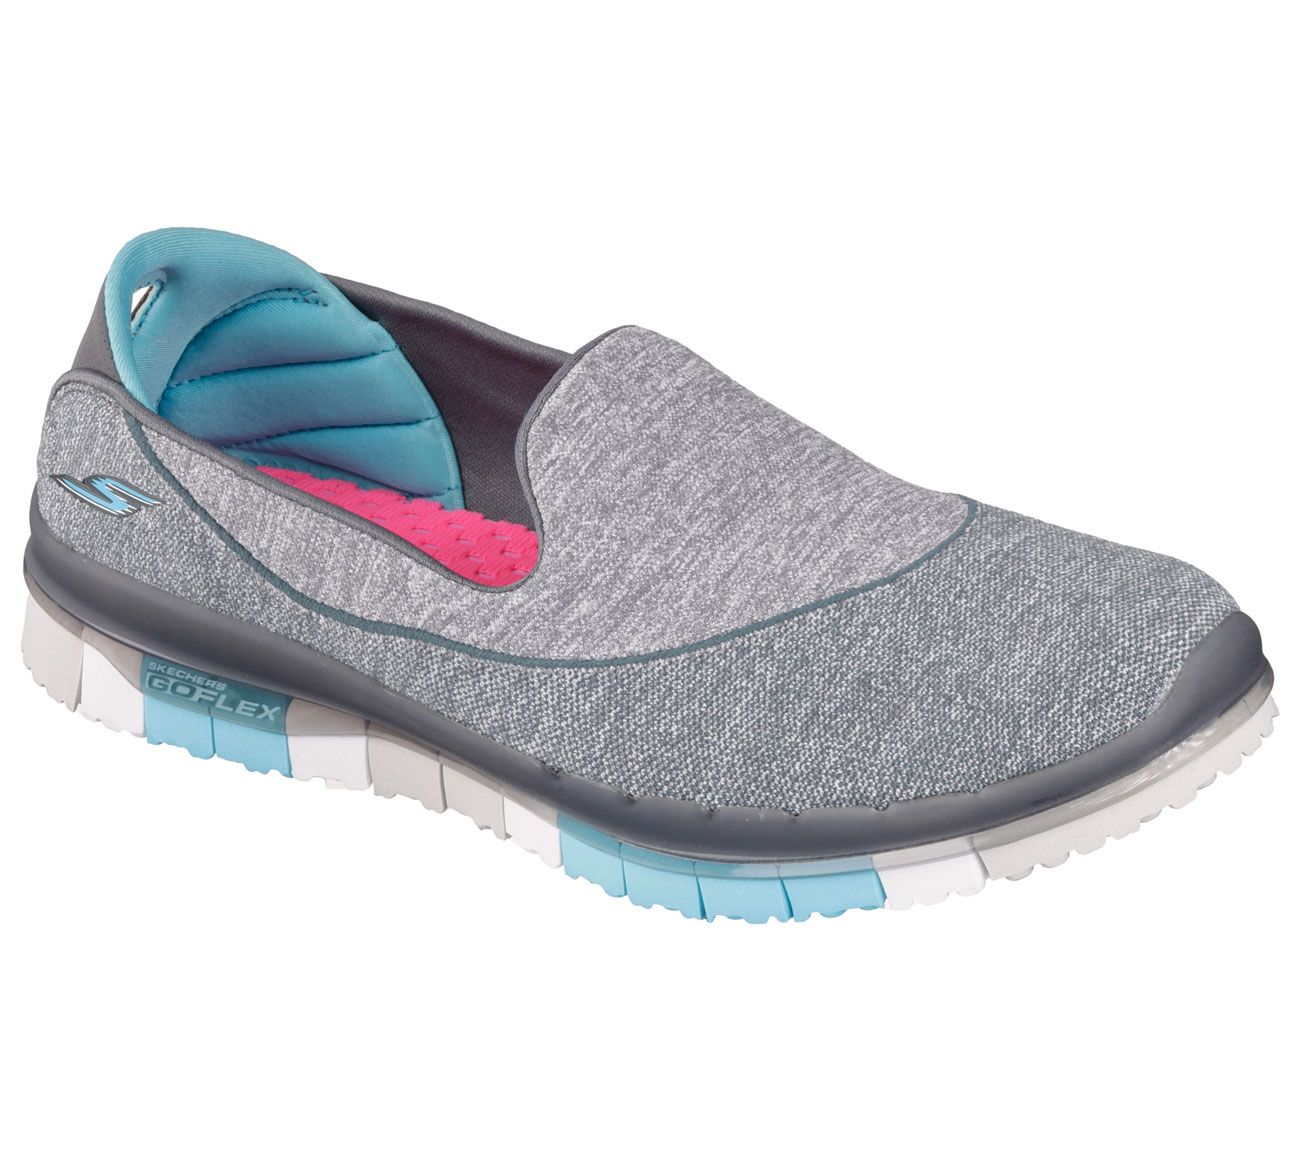 bfa1e0a4354bf7 GO FLEX Walk in 2019 | All things Gurley | Sketchers shoes, Shoes ...